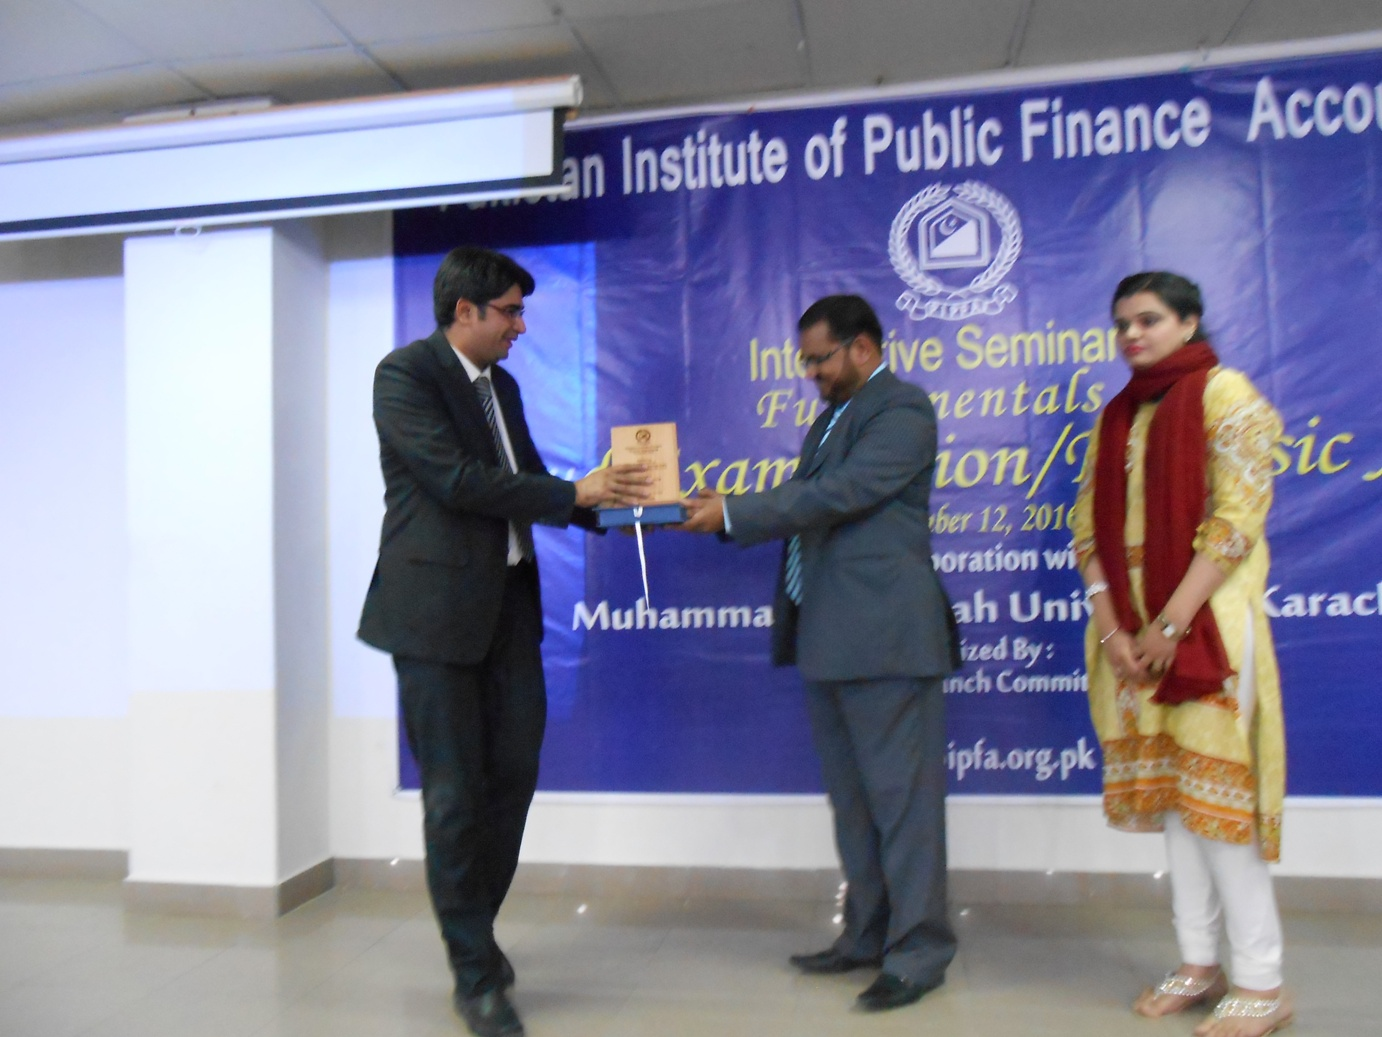 Mr. Tariq Hussain presenting shield to Dr. Shujat Mubarak